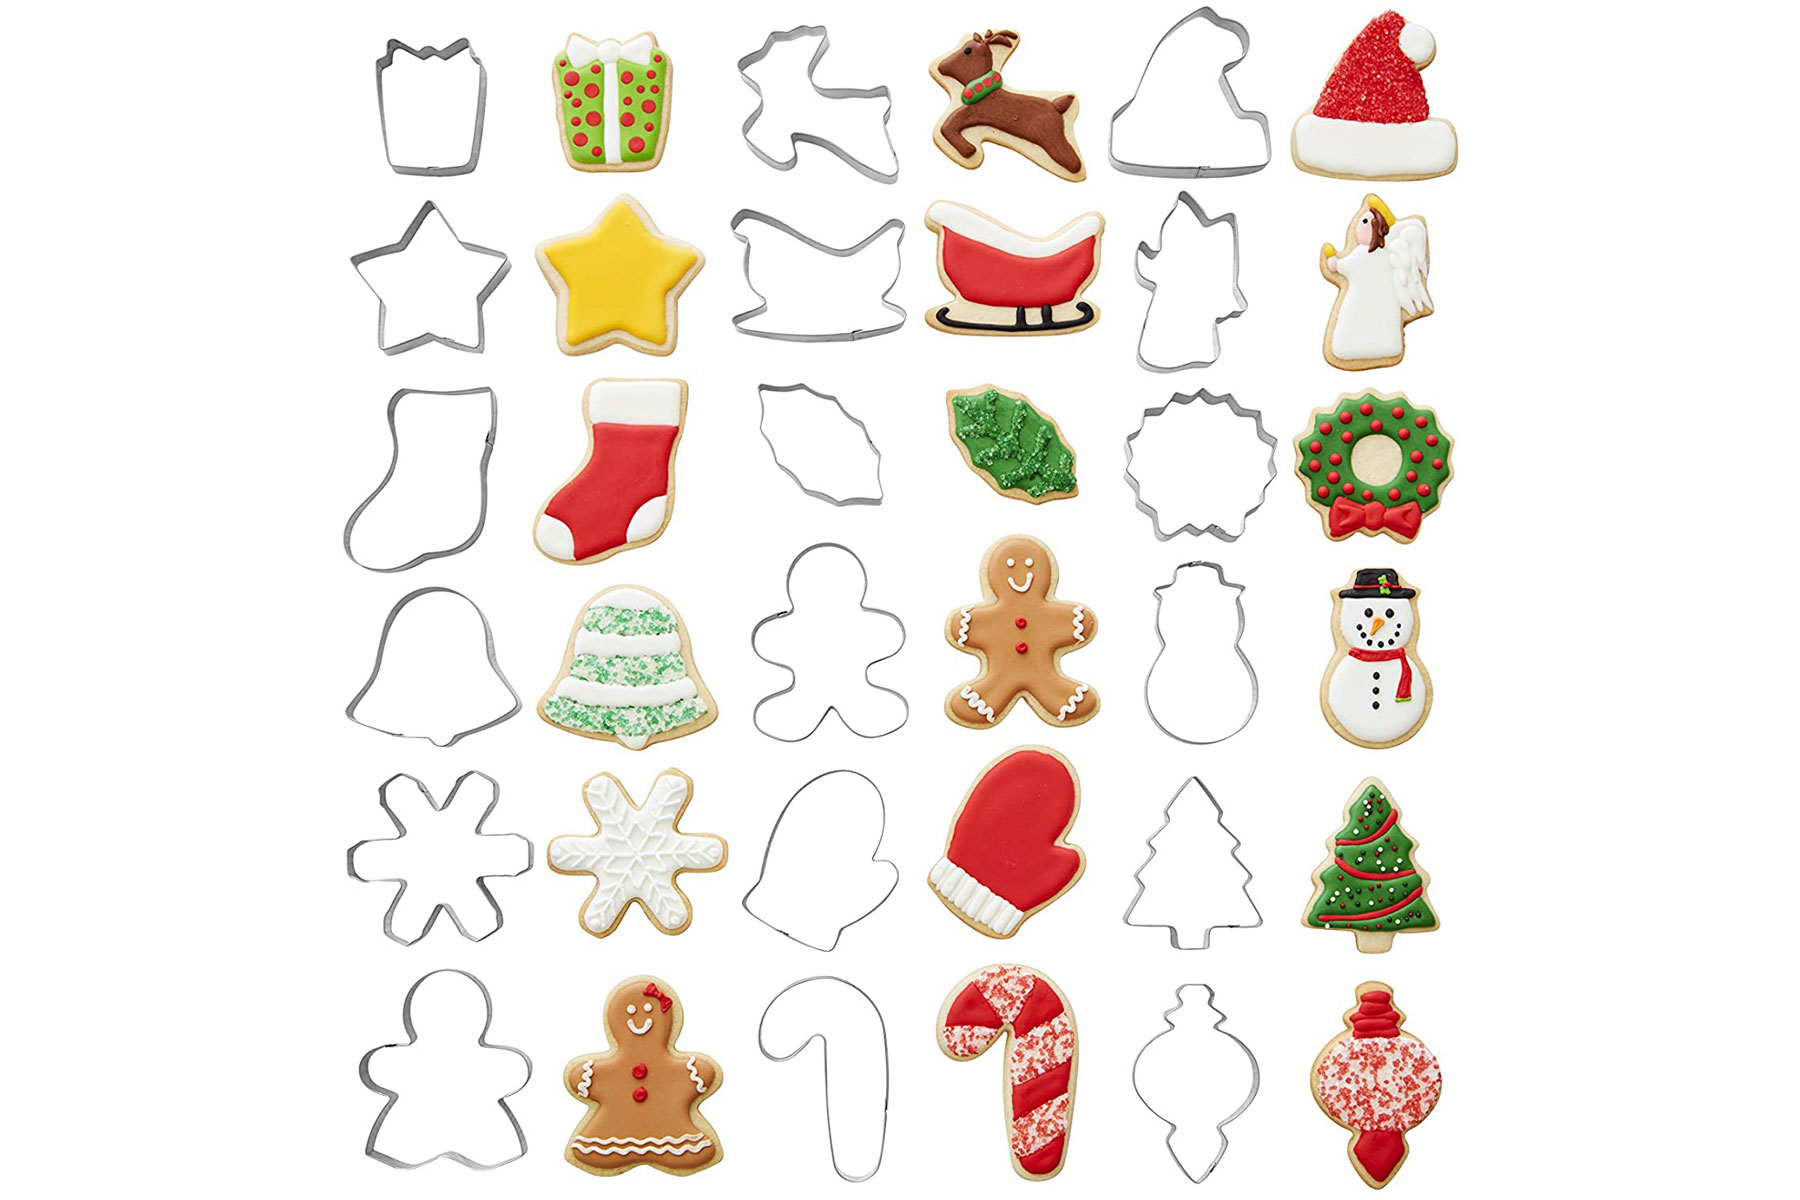 Various holiday-themed cookie cutters